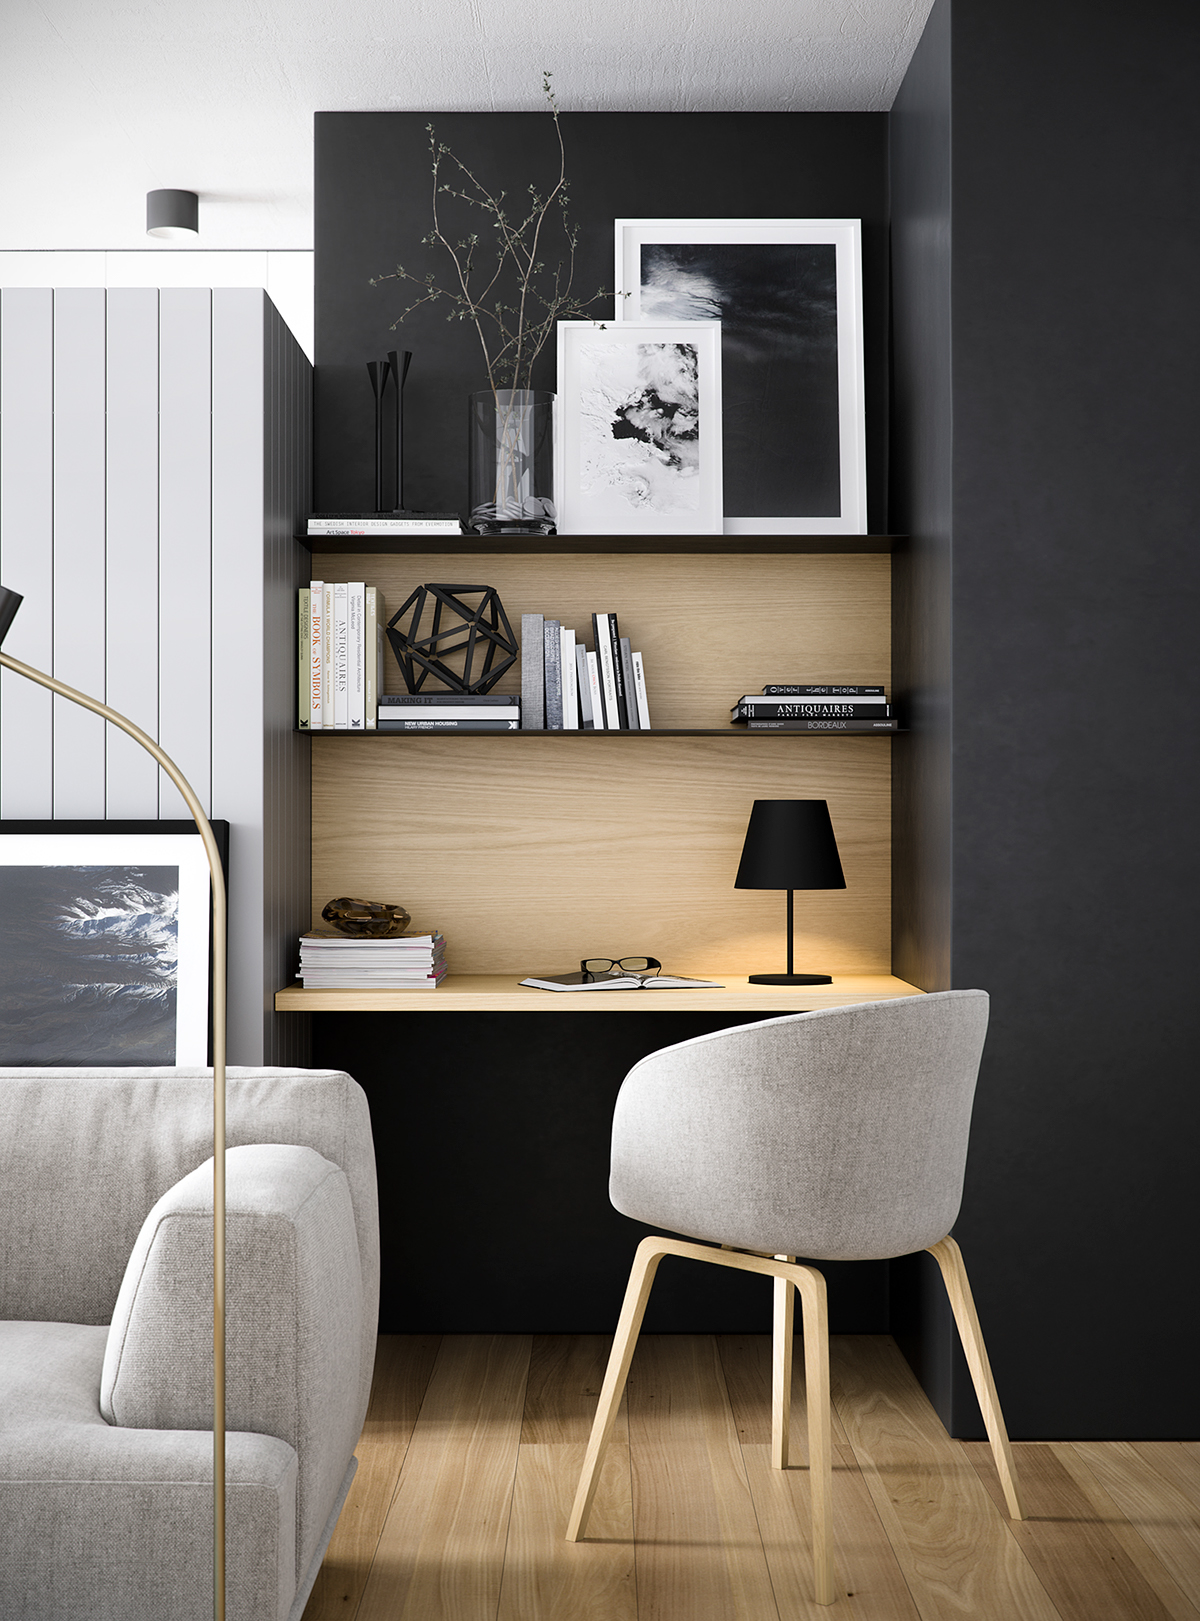 Home Office Room Design: 51 Modern Home Office Design Ideas For Inspiration